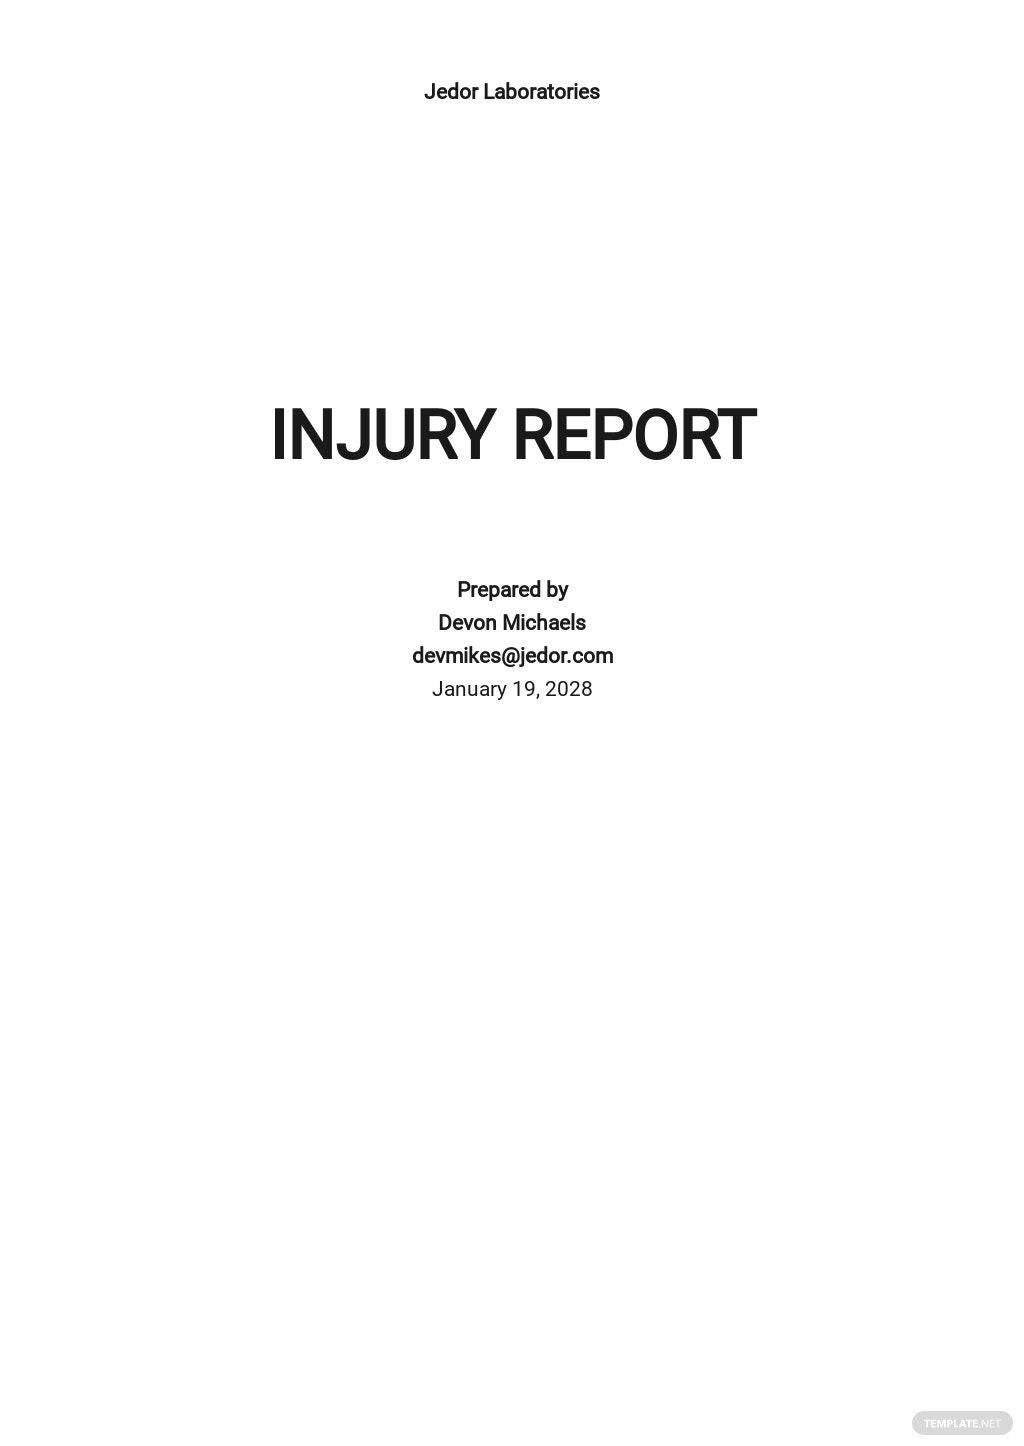 Free Injury Incident Report Form Template.jpe